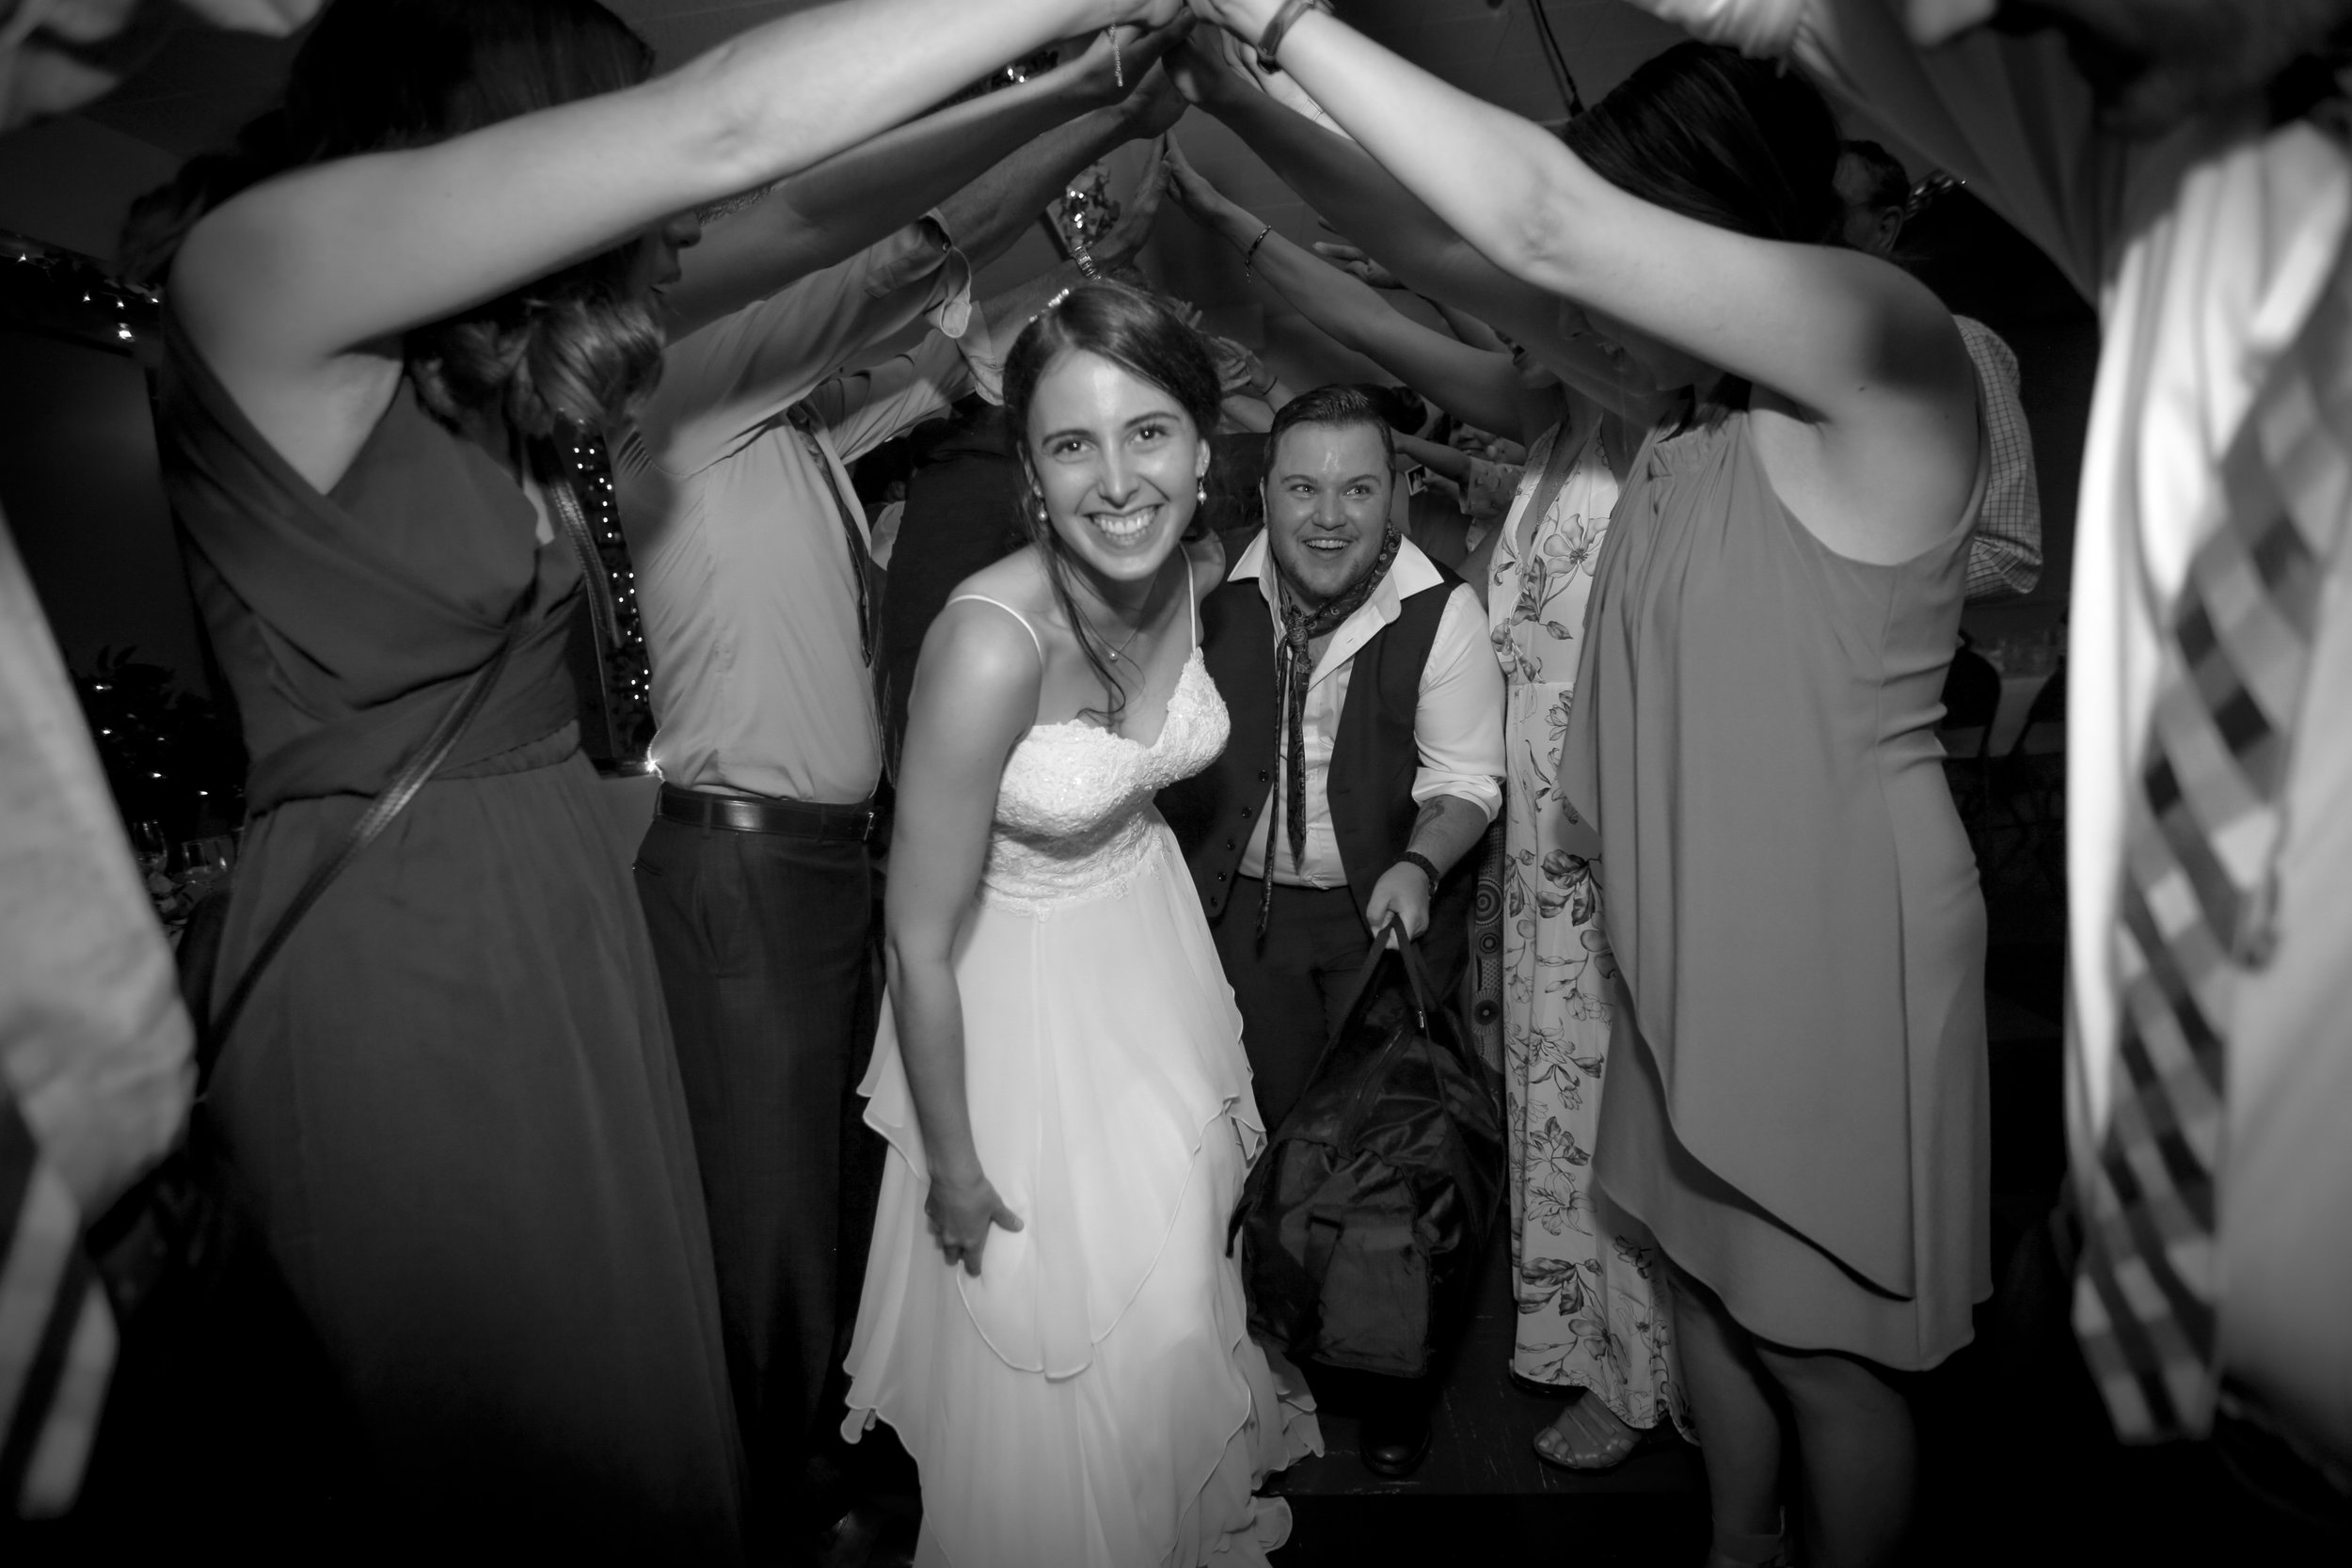 Emily&AaronWedding (568 of 572).jpg